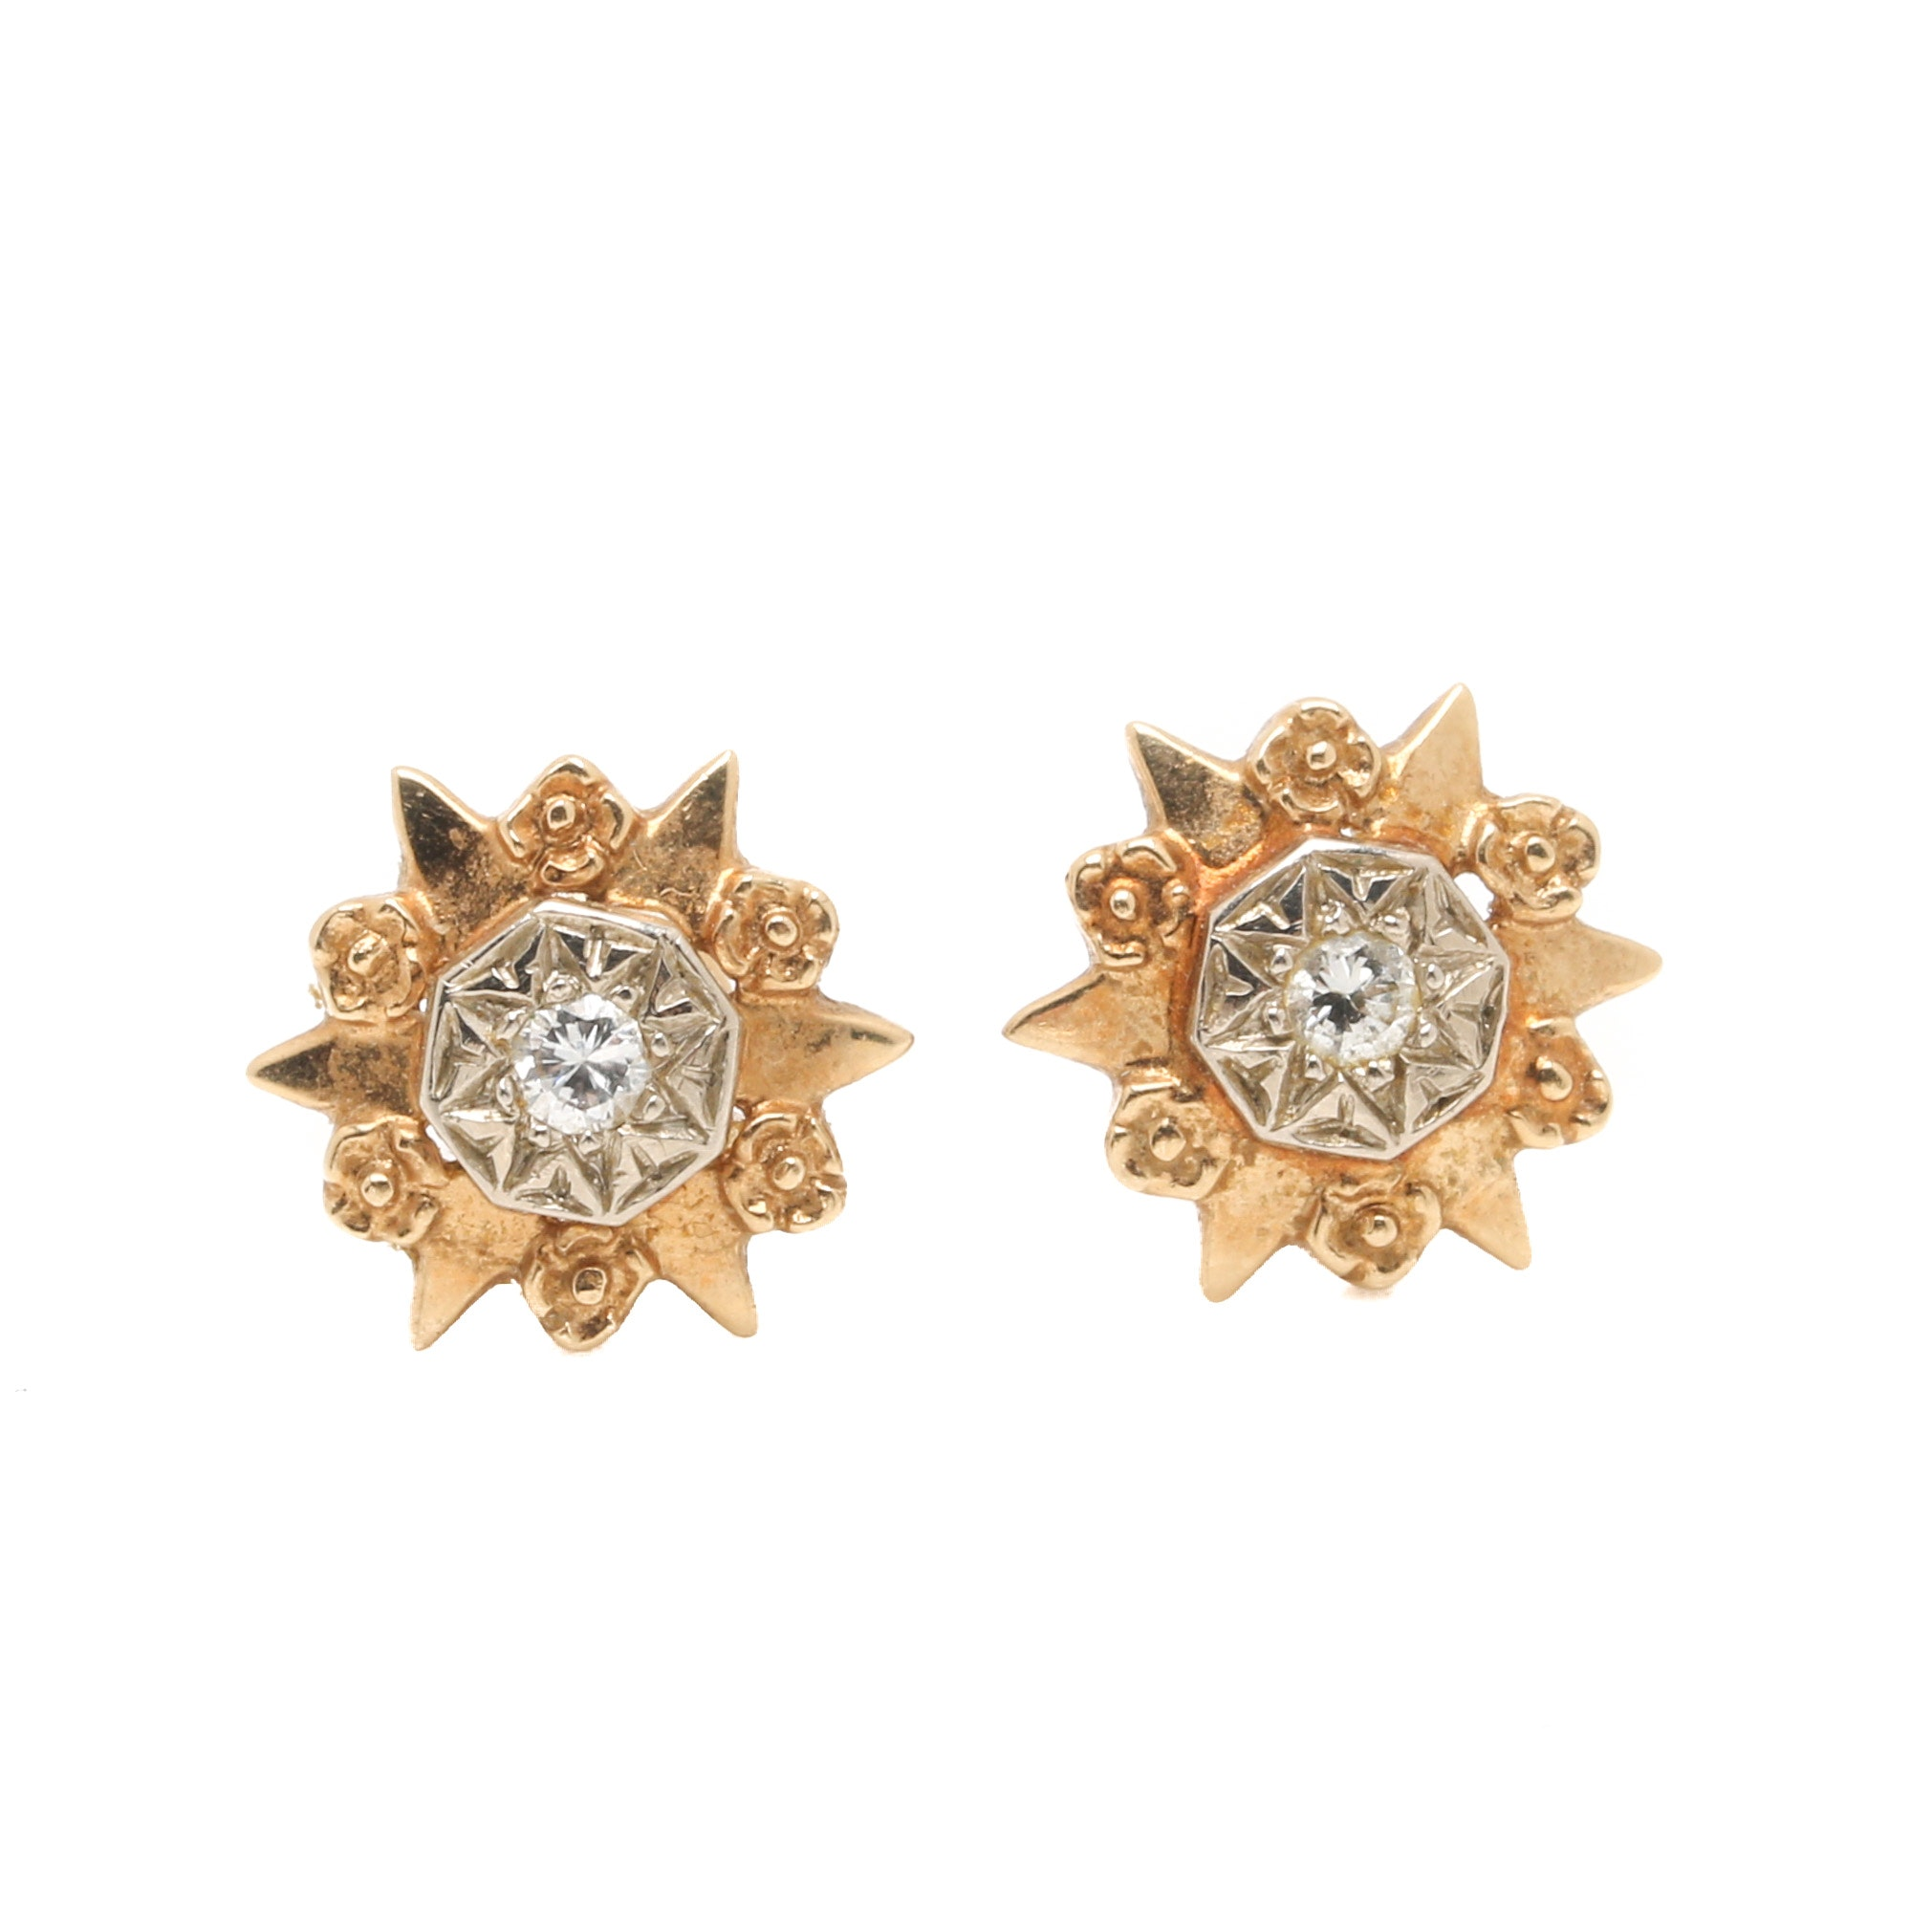 14K Two-Tone Gold Diamond Stud Earrings